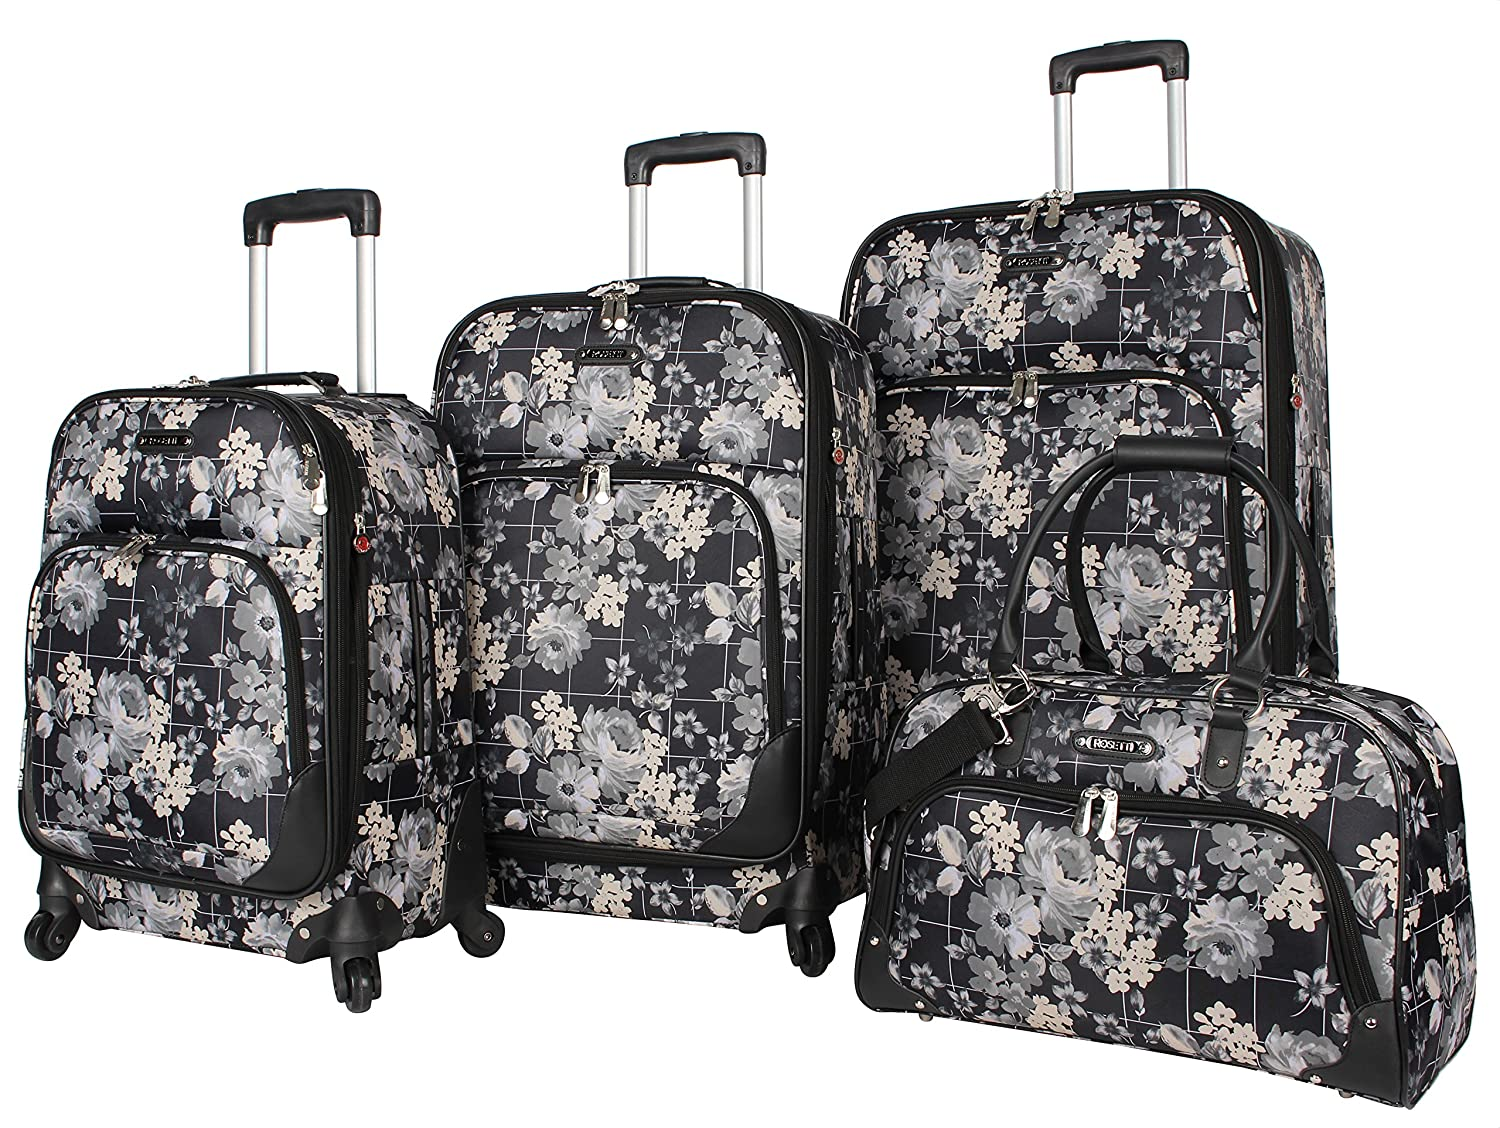 Rosetti Luggage Set 4 Piece Expandable Softside Suitcase With Spinner Wheels